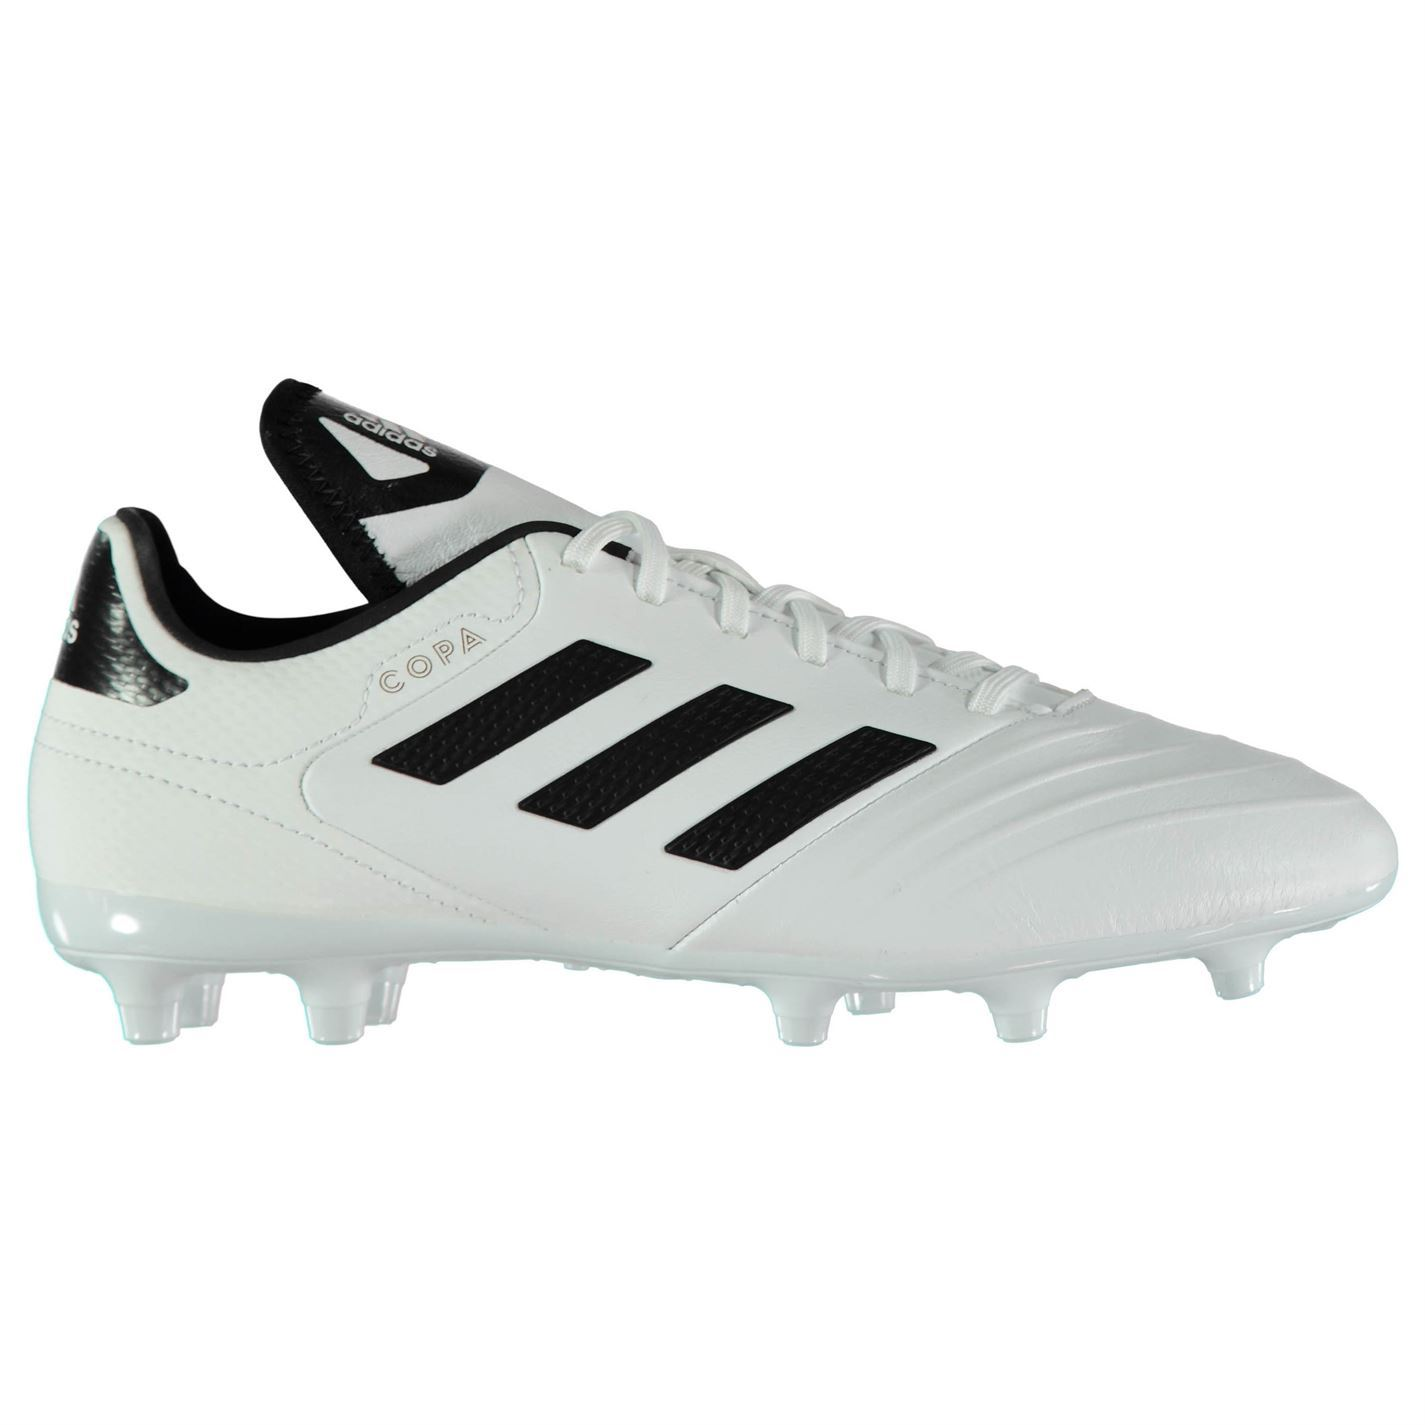 86614b6da ... adidas Copa 18.3 Firm Ground Football Boots Mens White Black Gold  Soccer Cleats ...